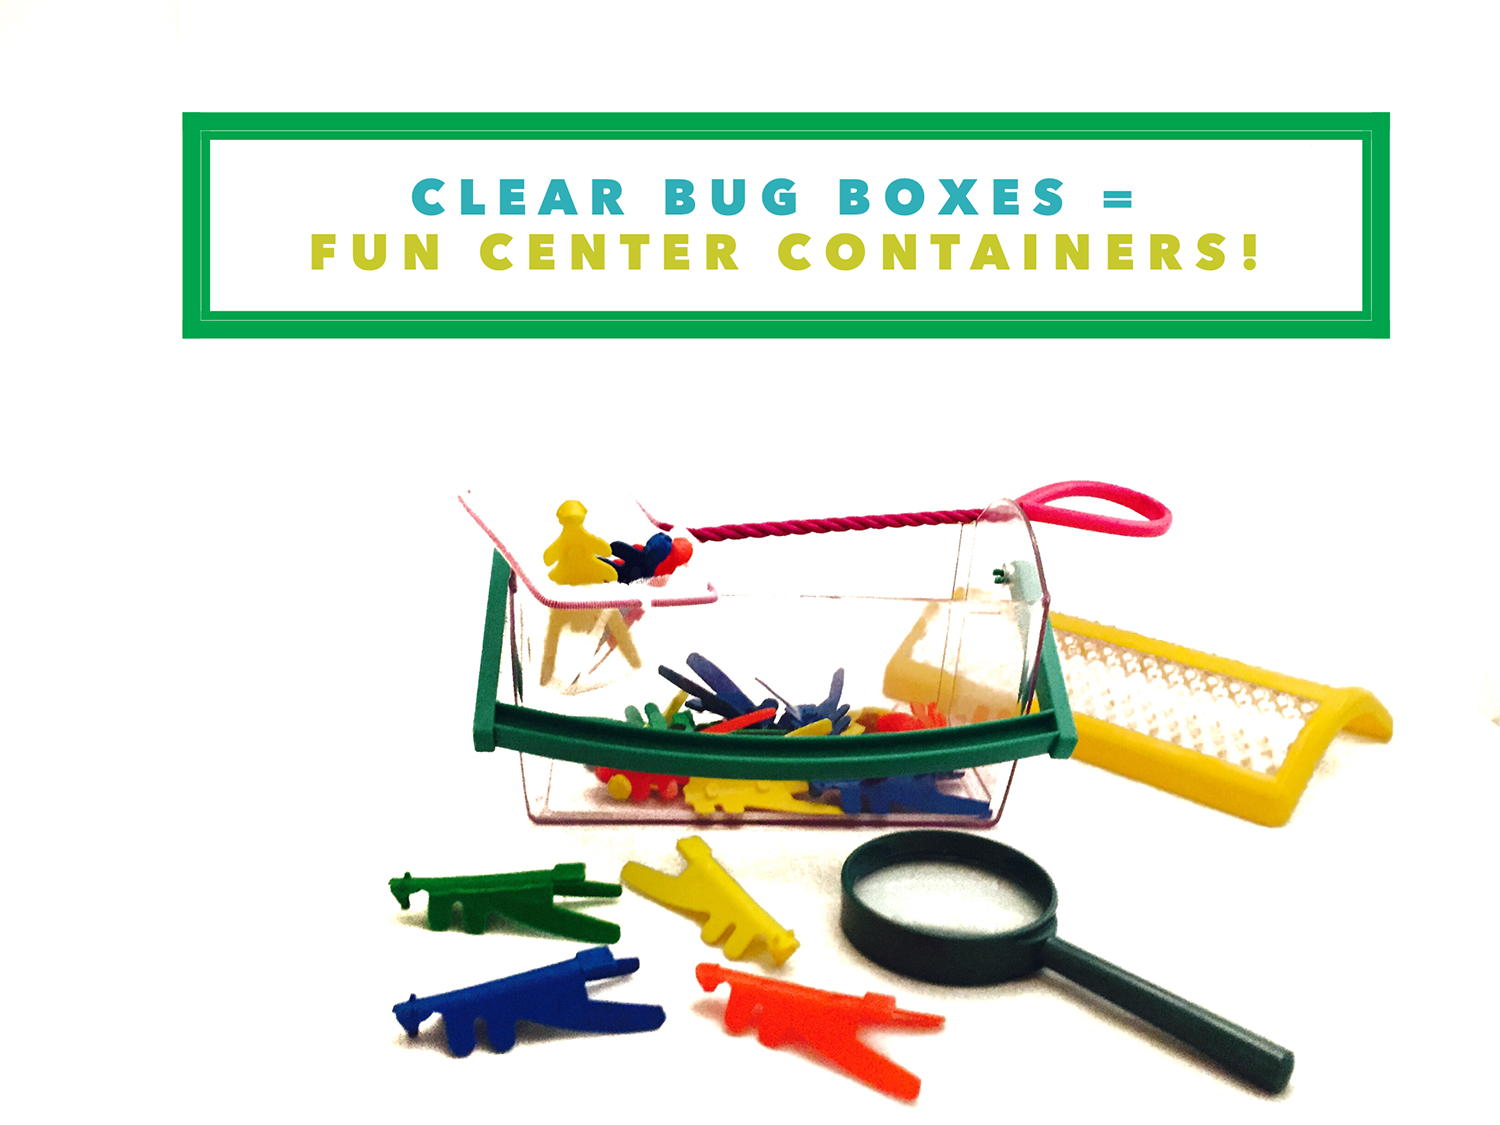 Clear bug boxes = fun center storage